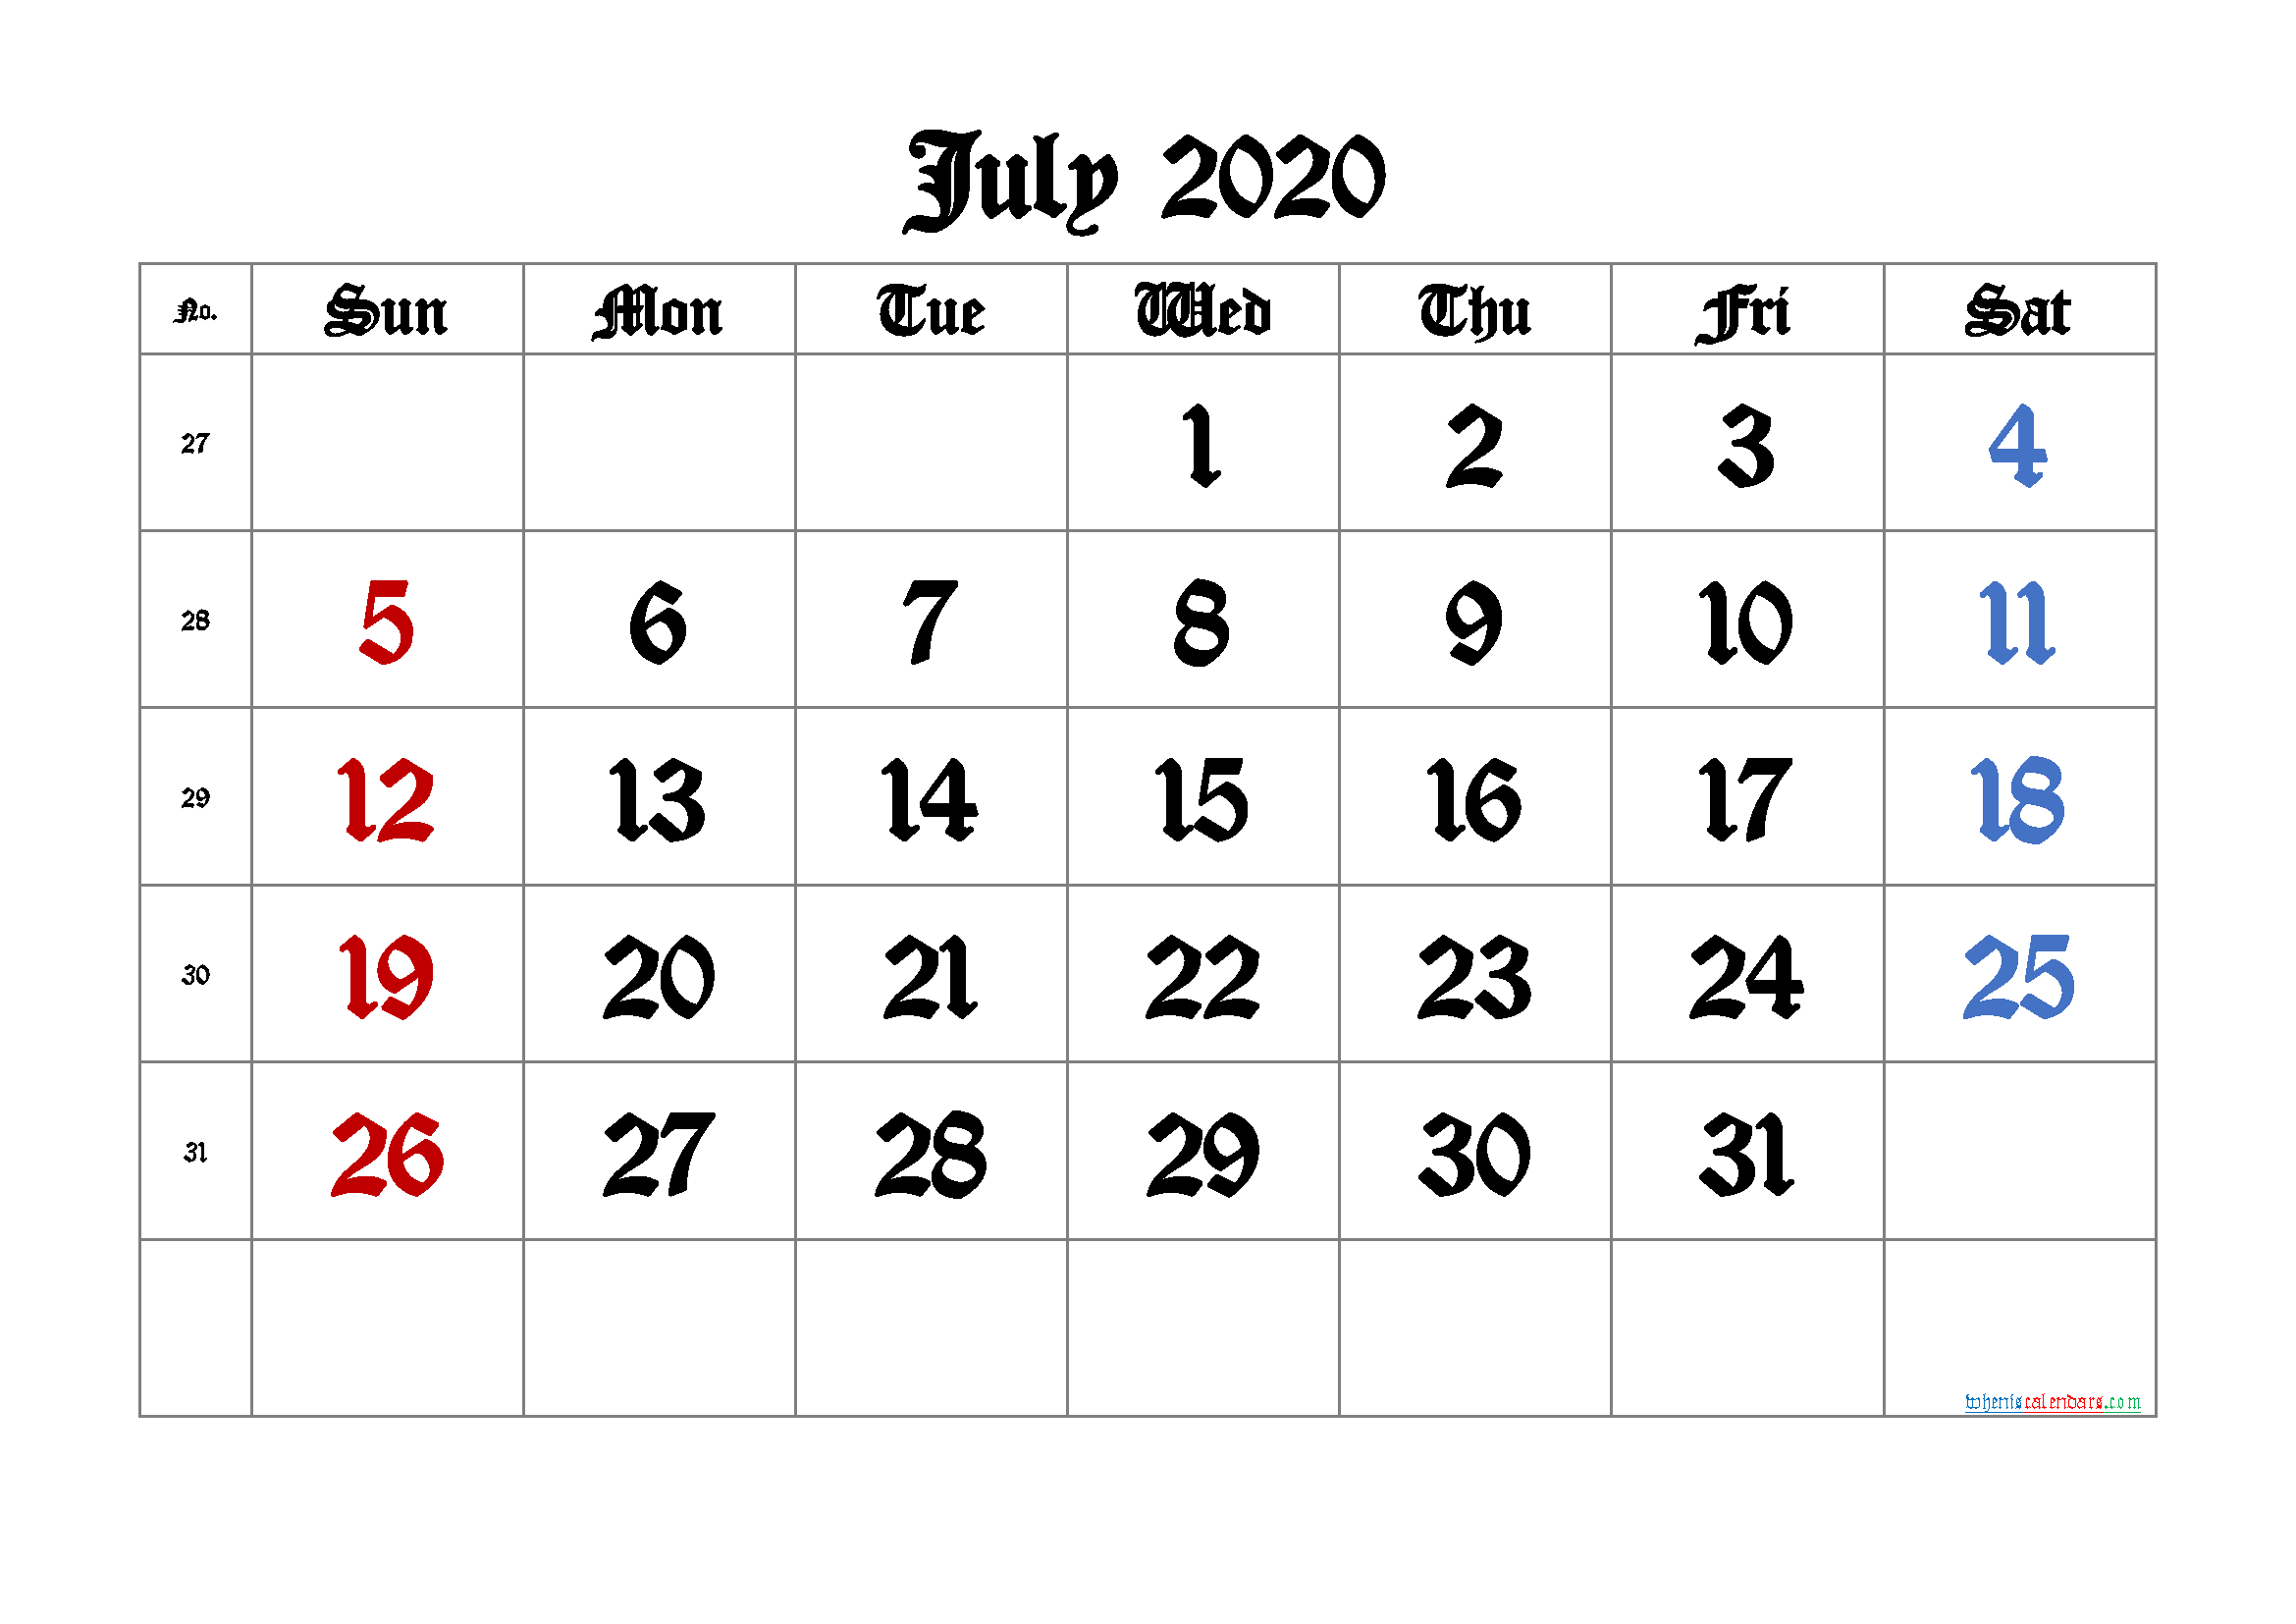 July 2020 Printable Calendar with Week Numbers